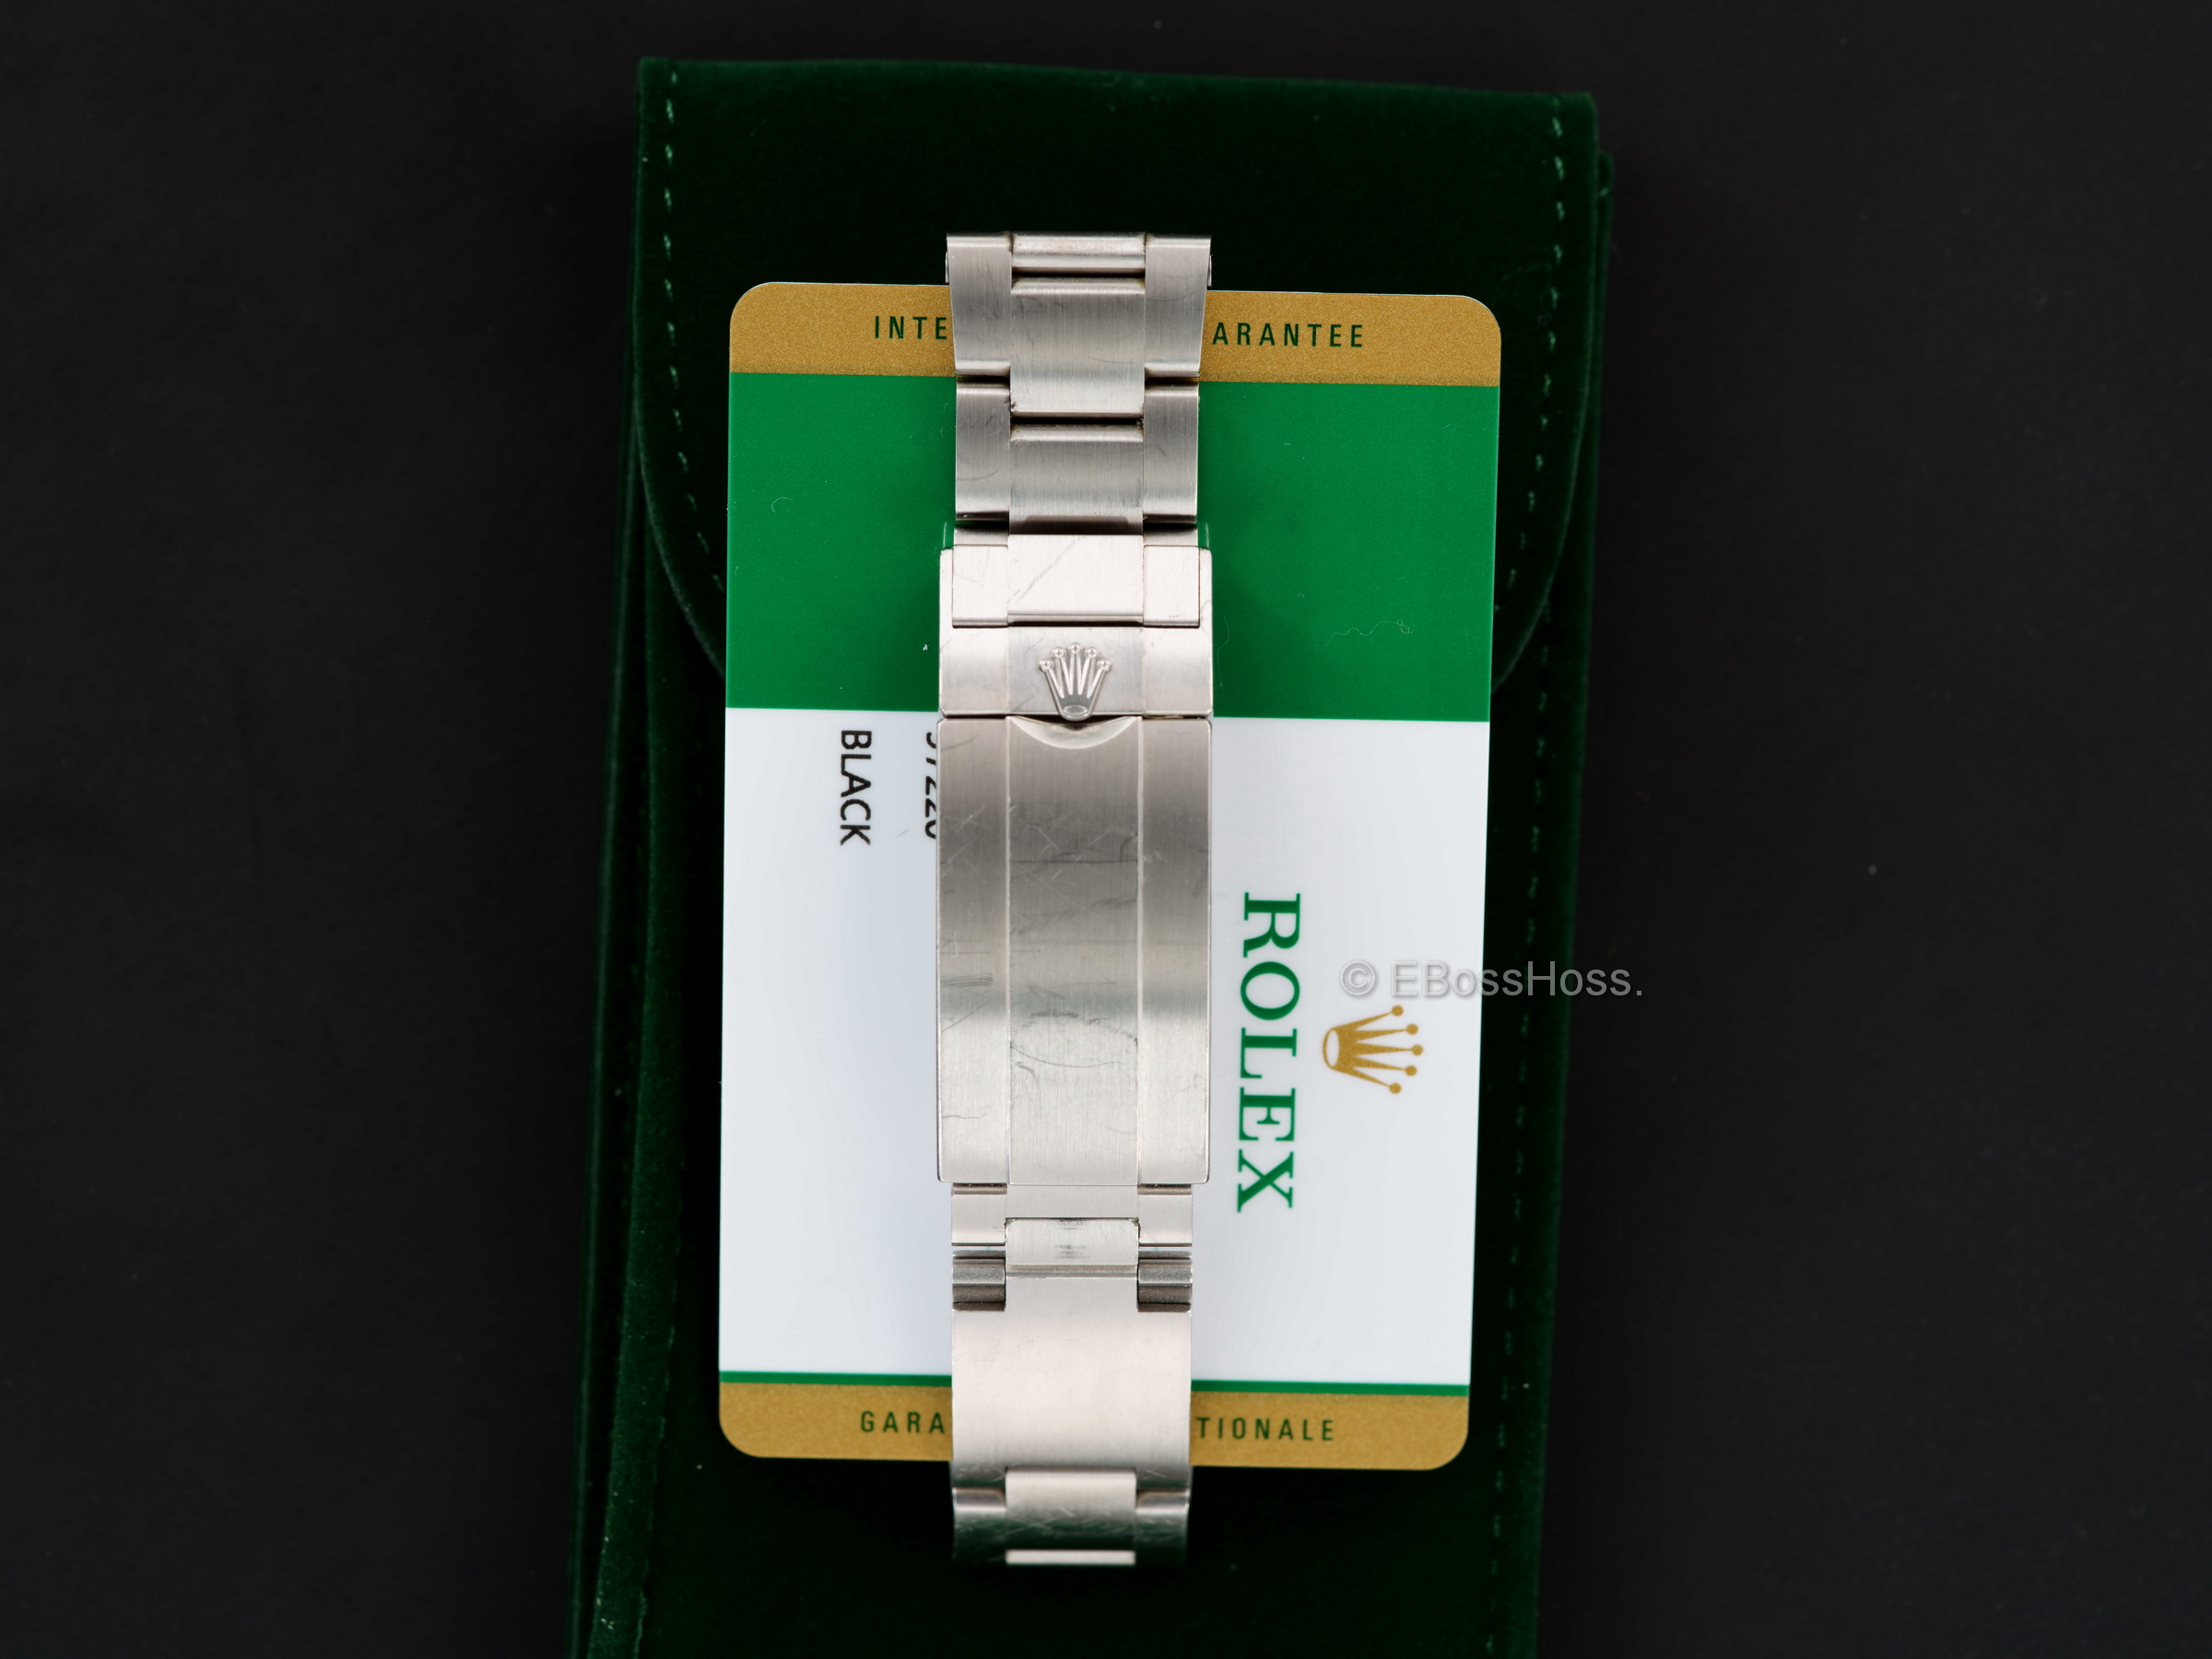 ROLEX 43mm Red-Reference SEA-DWELLER 50th Anniv - Model 126600